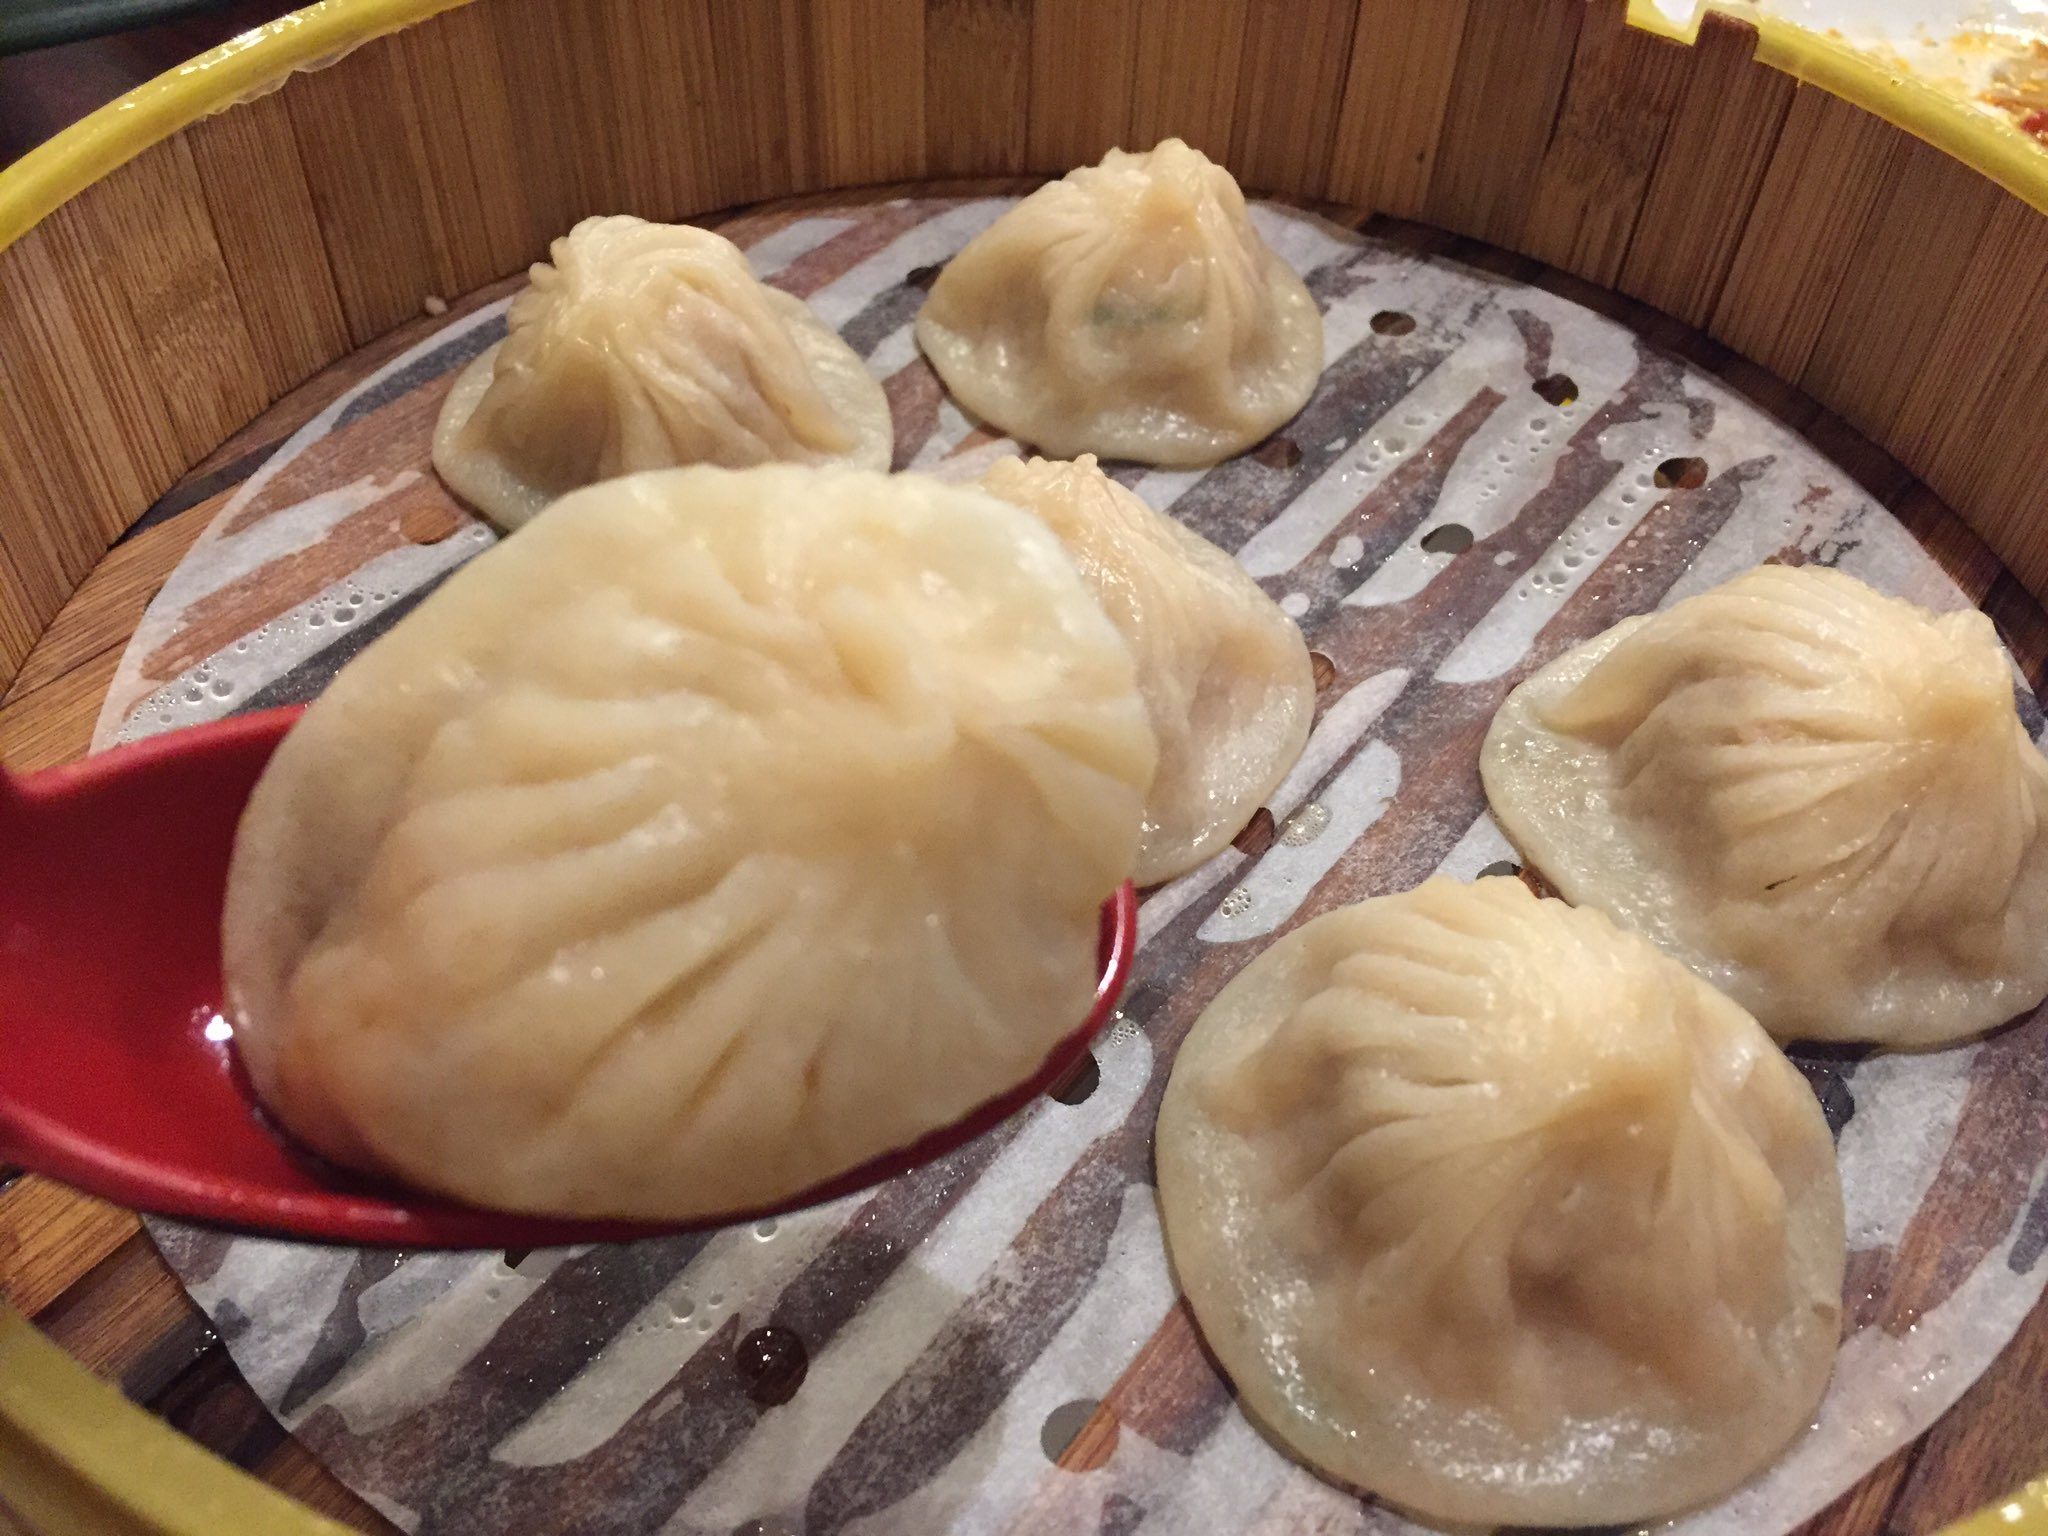 Thanks @berkeleyside for featuring my blog post about #xiaolongbao https://t.co/W4UIHDxac0 https://t.co/4BJqIX8M0B